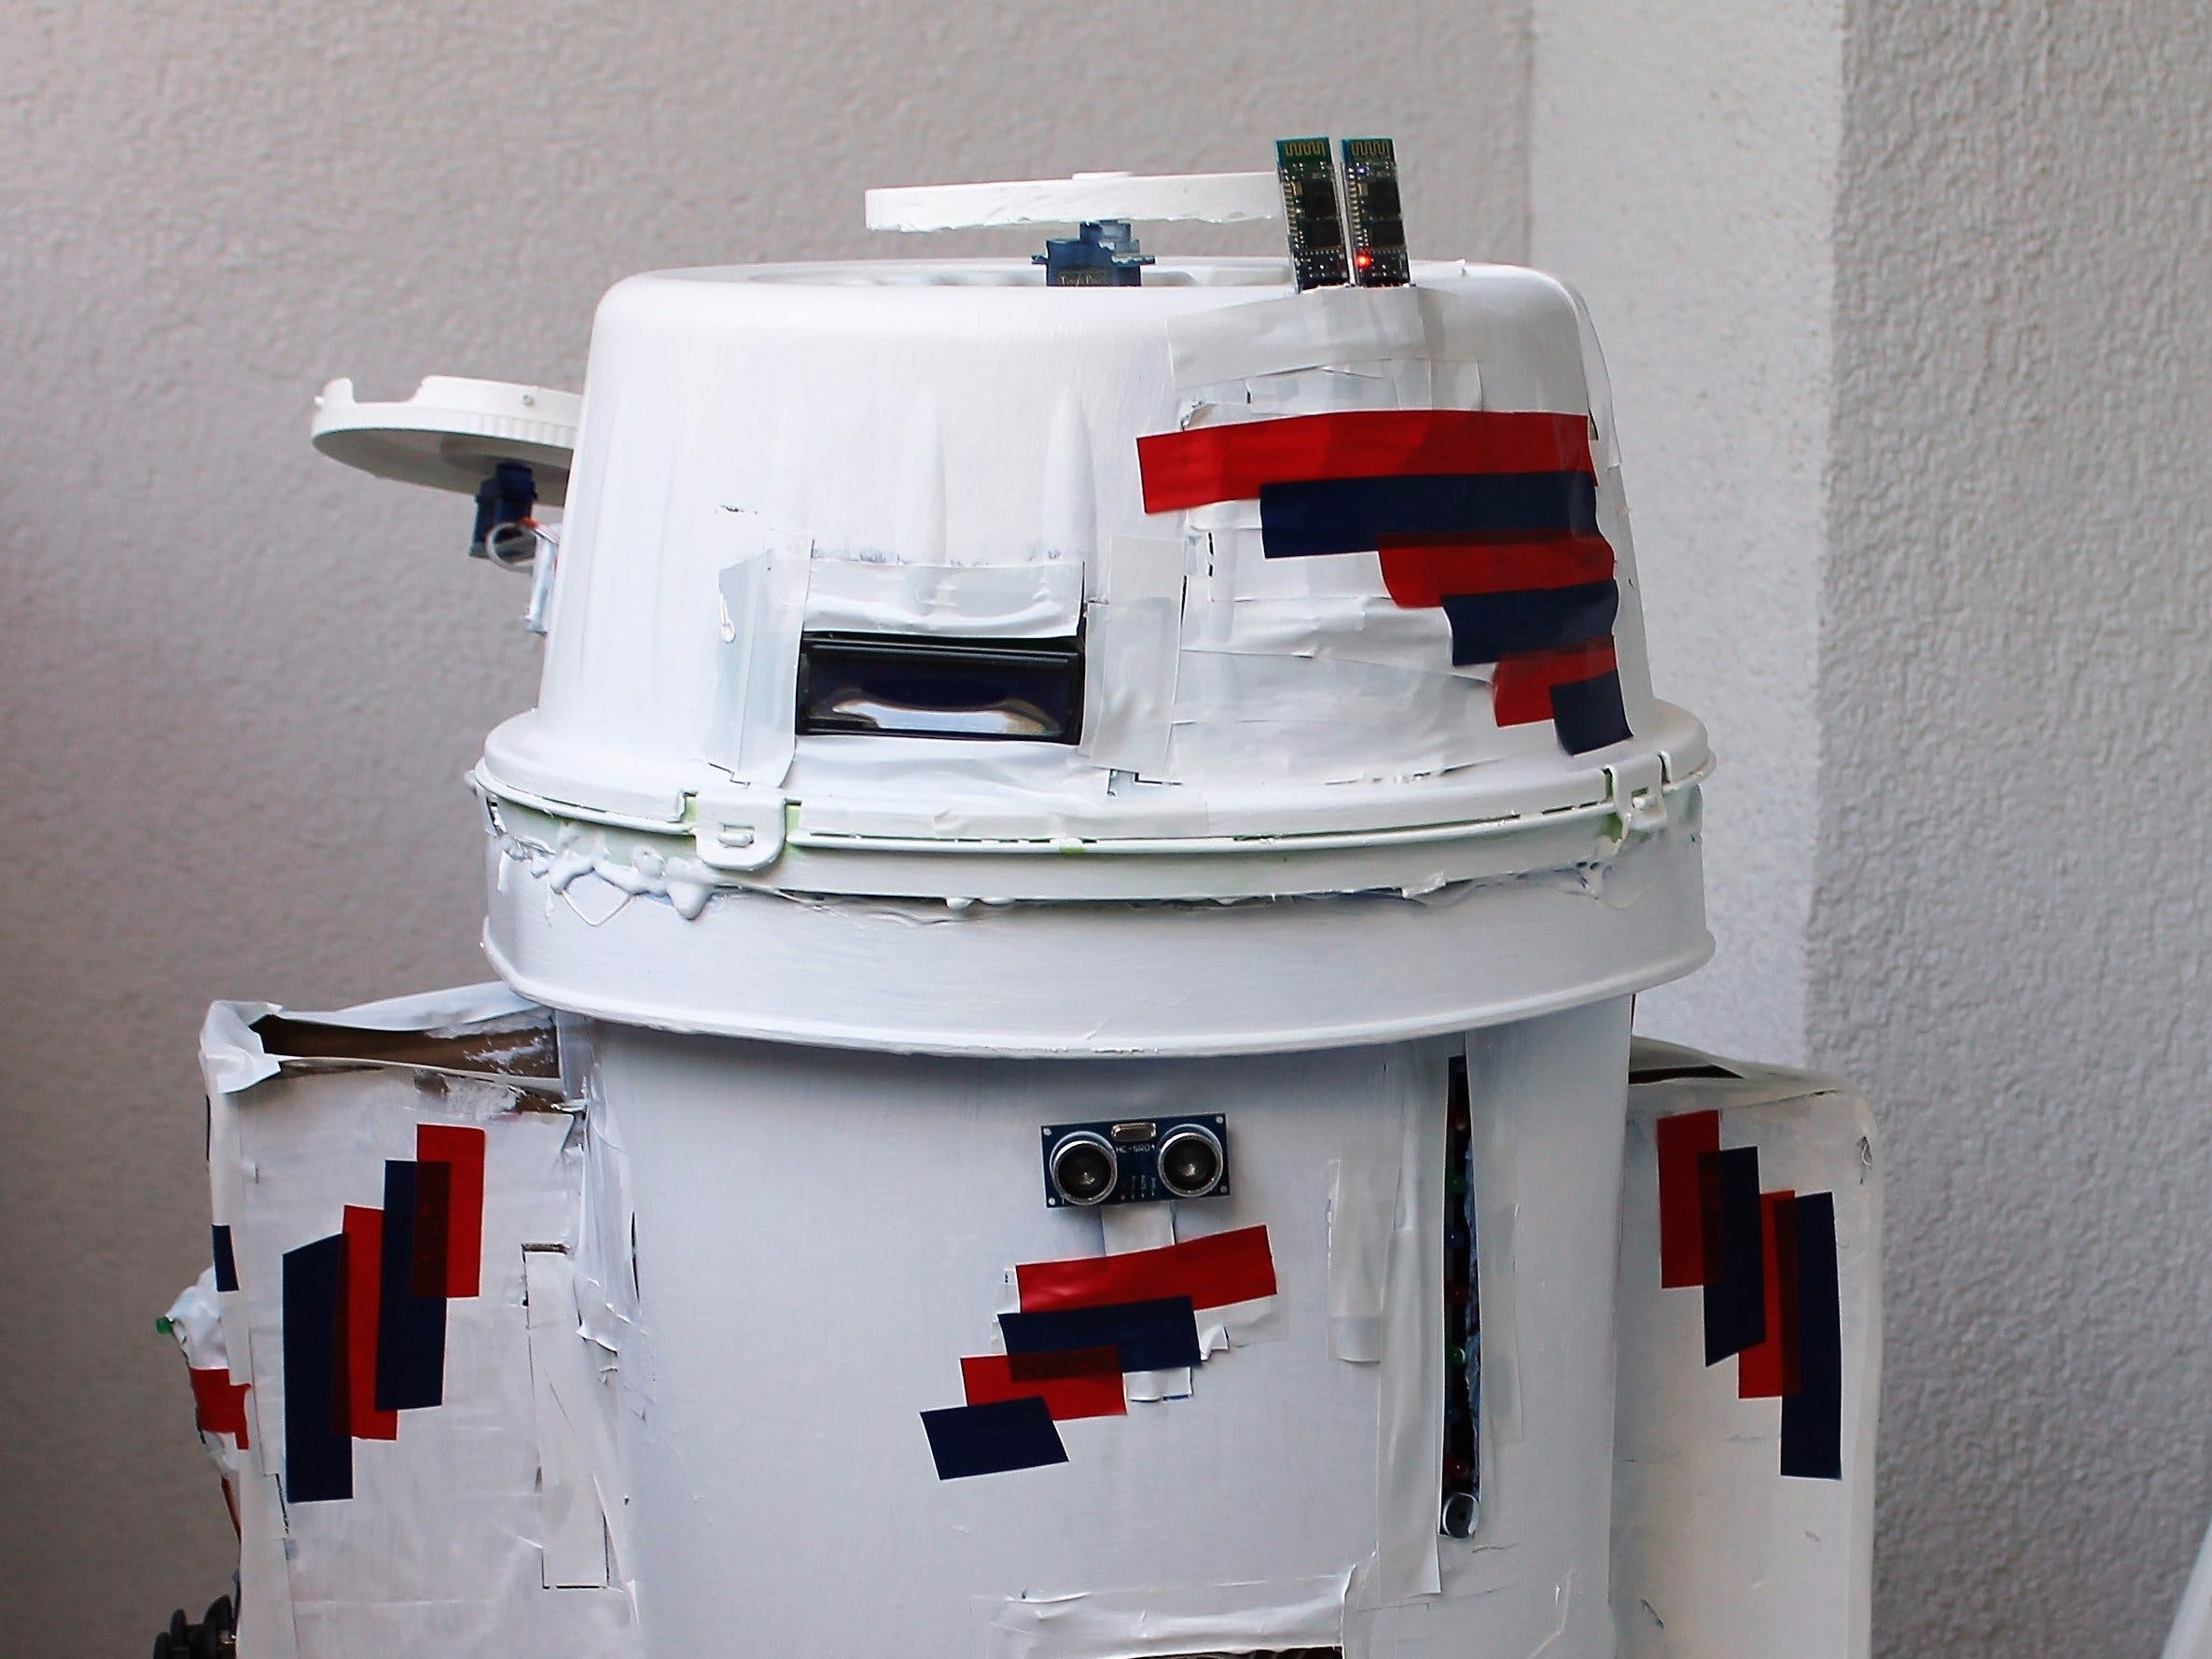 Make an Enhanced R2-D2 to Be Controlled by an Android App